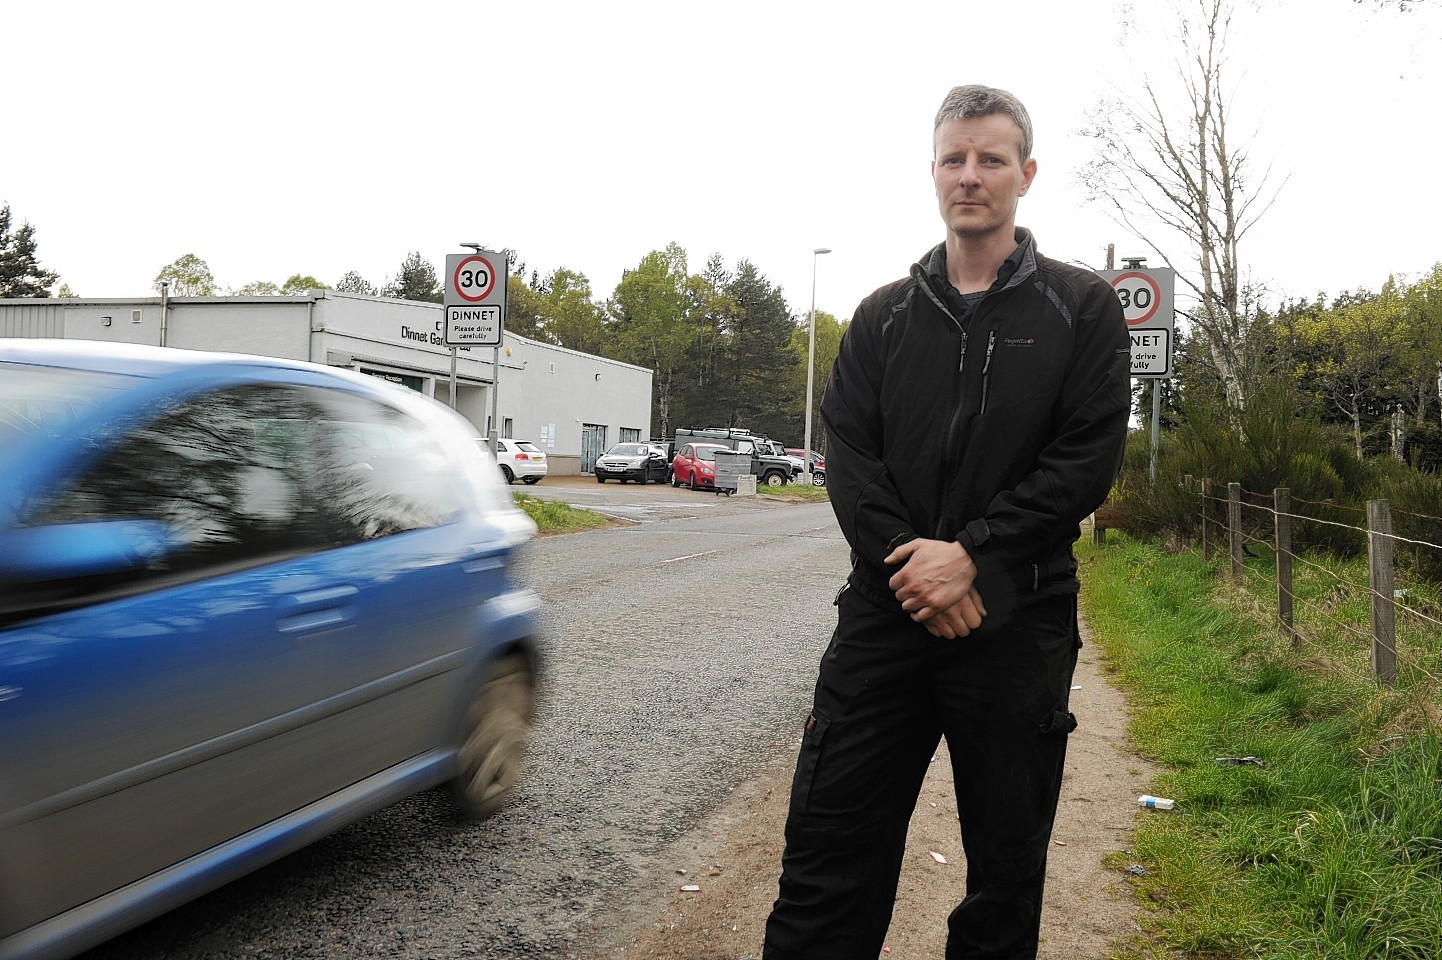 Scott McHardy, of Dinnet Garage, has been campaigning for the extension of the speed limit